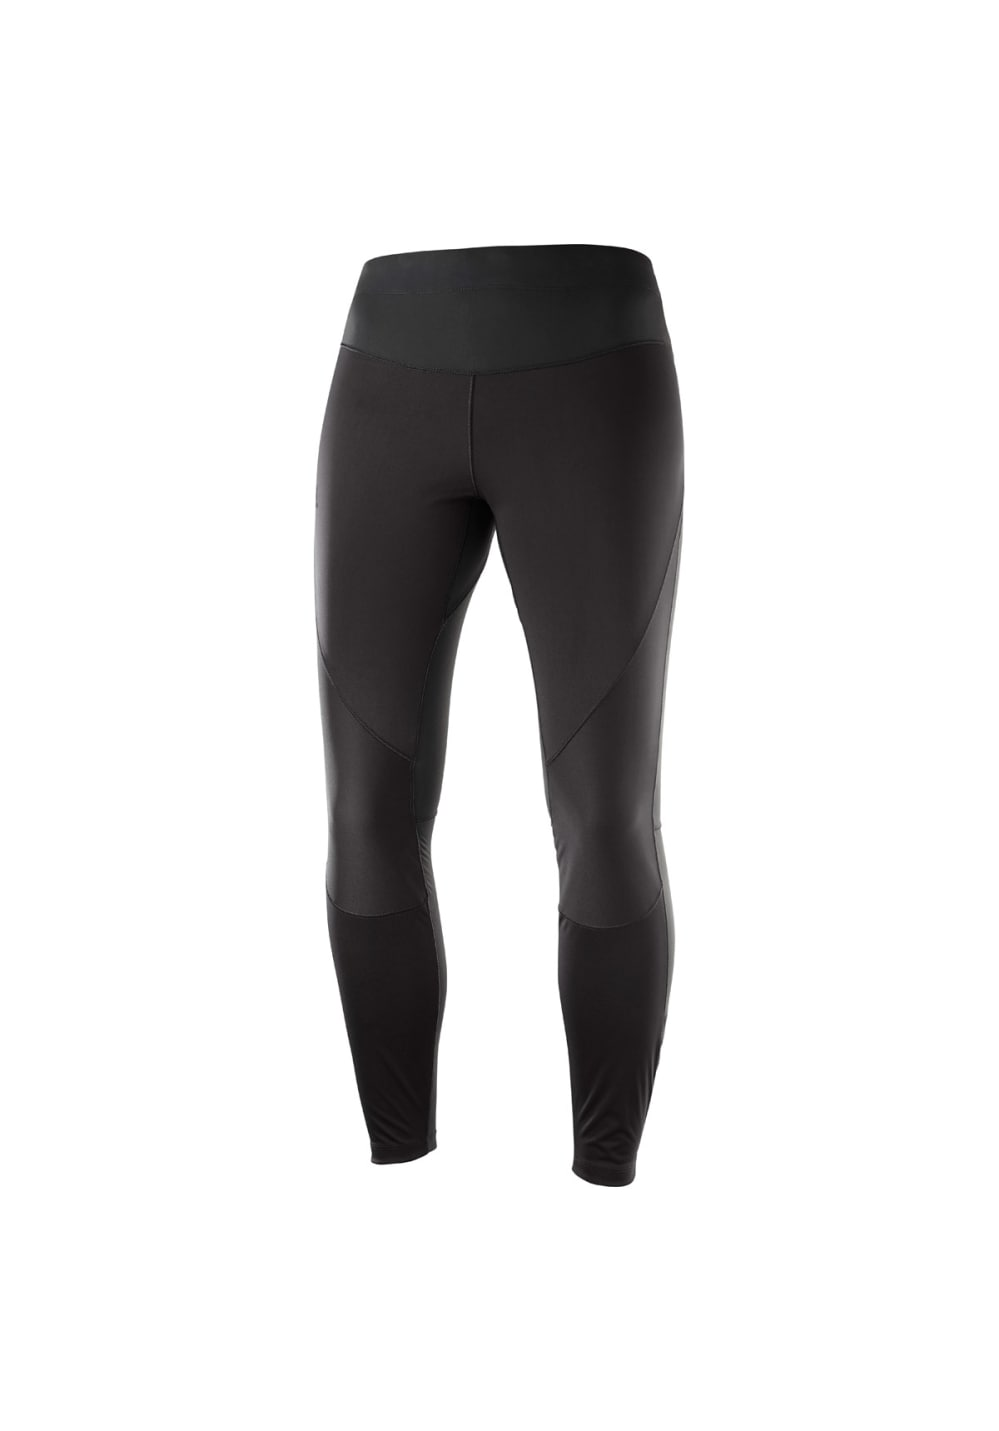 14a3d428 Salomon Agile Softshell Tight - Laufhosen für Damen - Schwarz | 21RUN